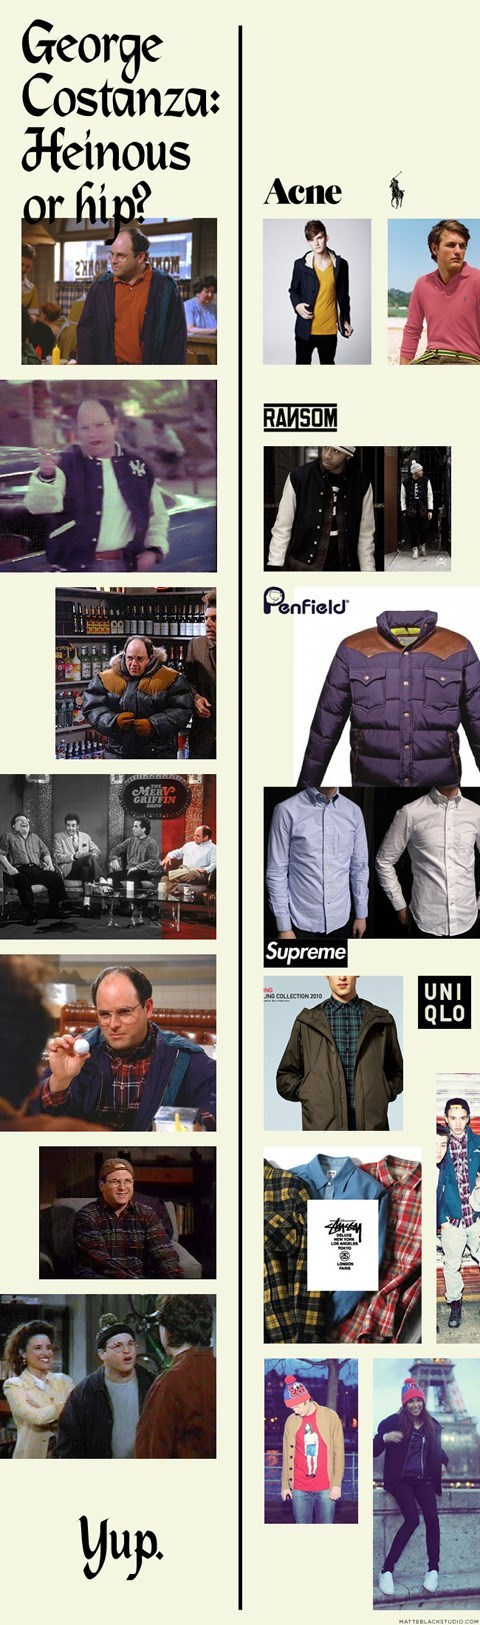 fashion,signs,george costanza,seinfeld,poorly dressed,g rated